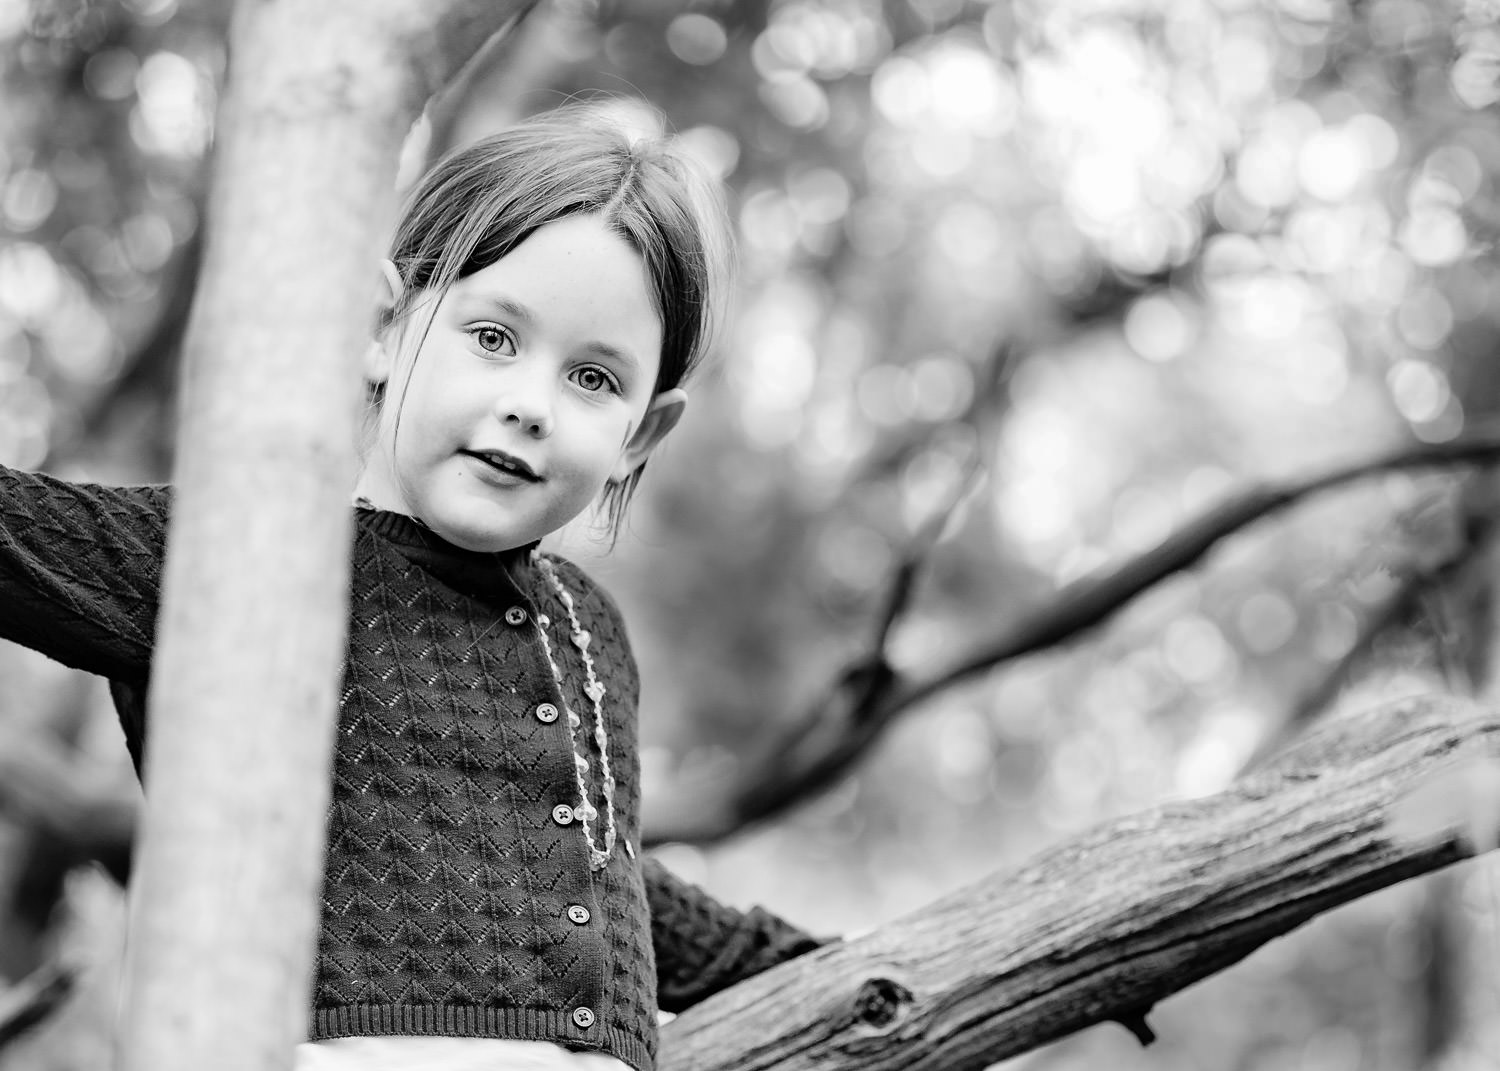 Black and white portrait of girl in tree